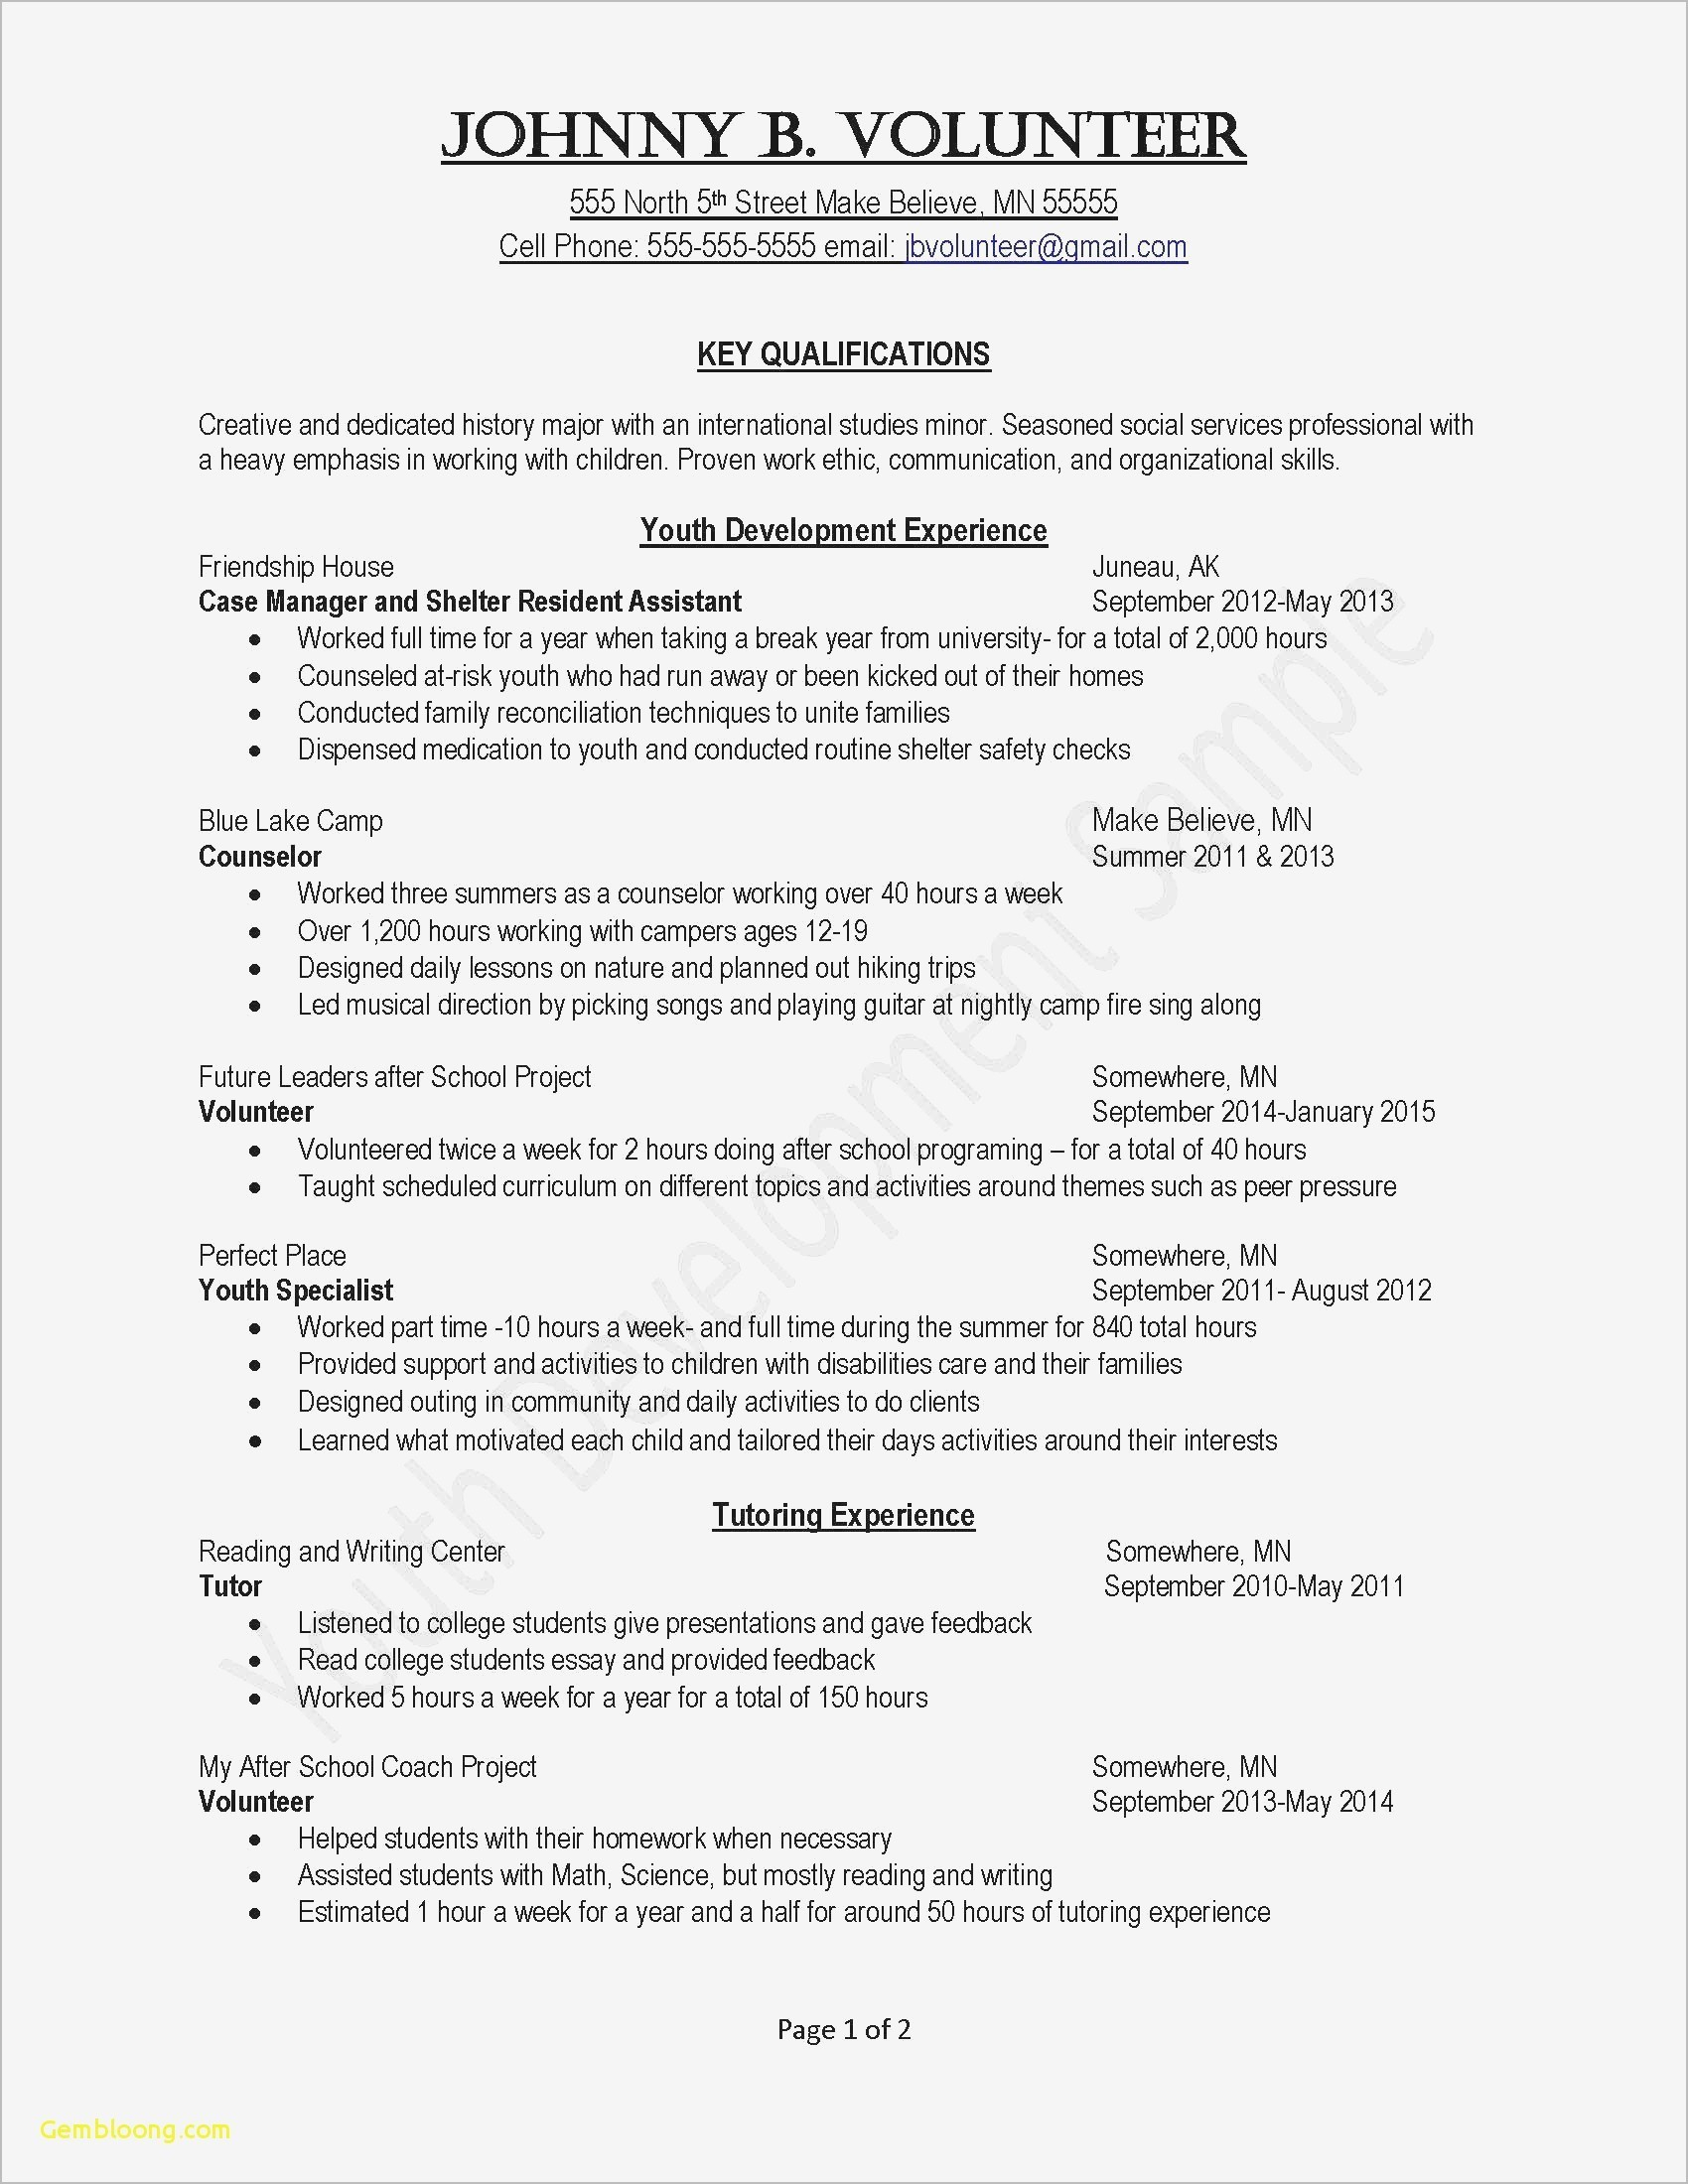 creating a cover letter template example-Fax Cover Sheet for Resume Inspirationa Fax Cover Letter Template New Job Fer Letter Template Us 4-f